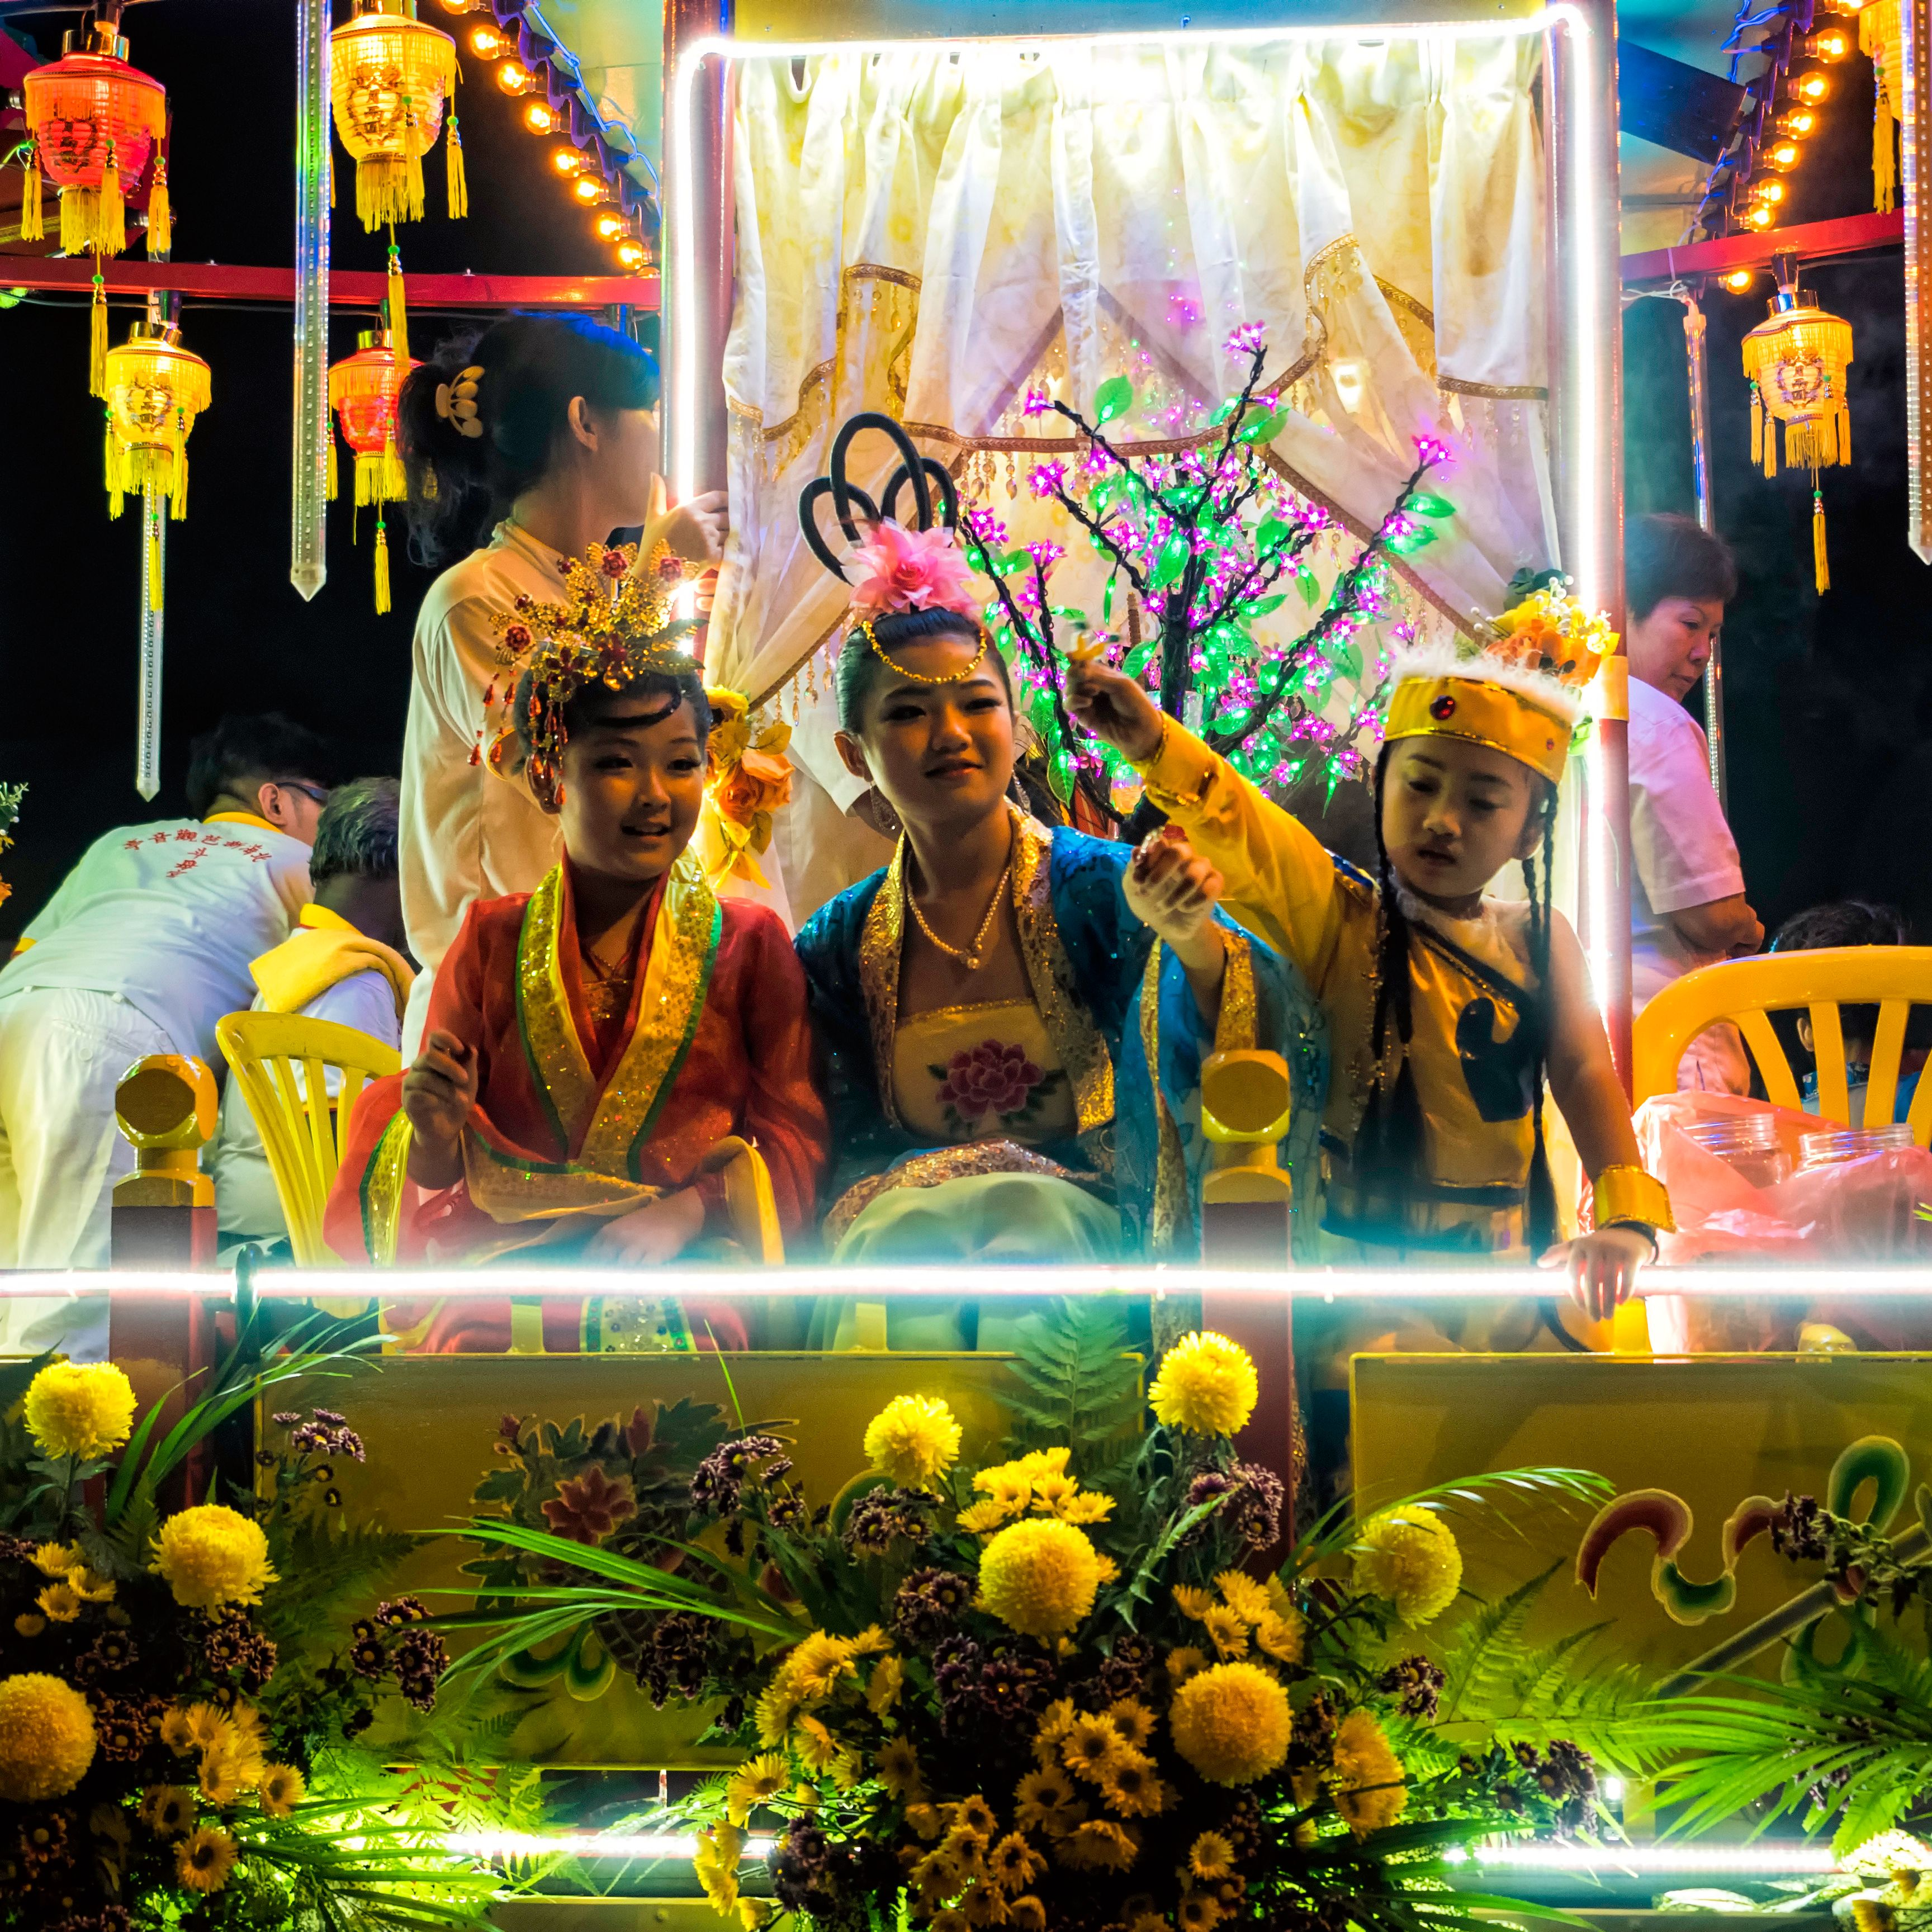 Kids dressed up to distribute candies to the bystanders in a parade during the Nine Emperor Gods festival which is celebrated on the ninth month in the lunar calendar each year in Malaysia. Foto: Zhu Lin Ch'ng, Malaysia, Shortlist, Culture, Youth, 2015 Sony World Photography Awards